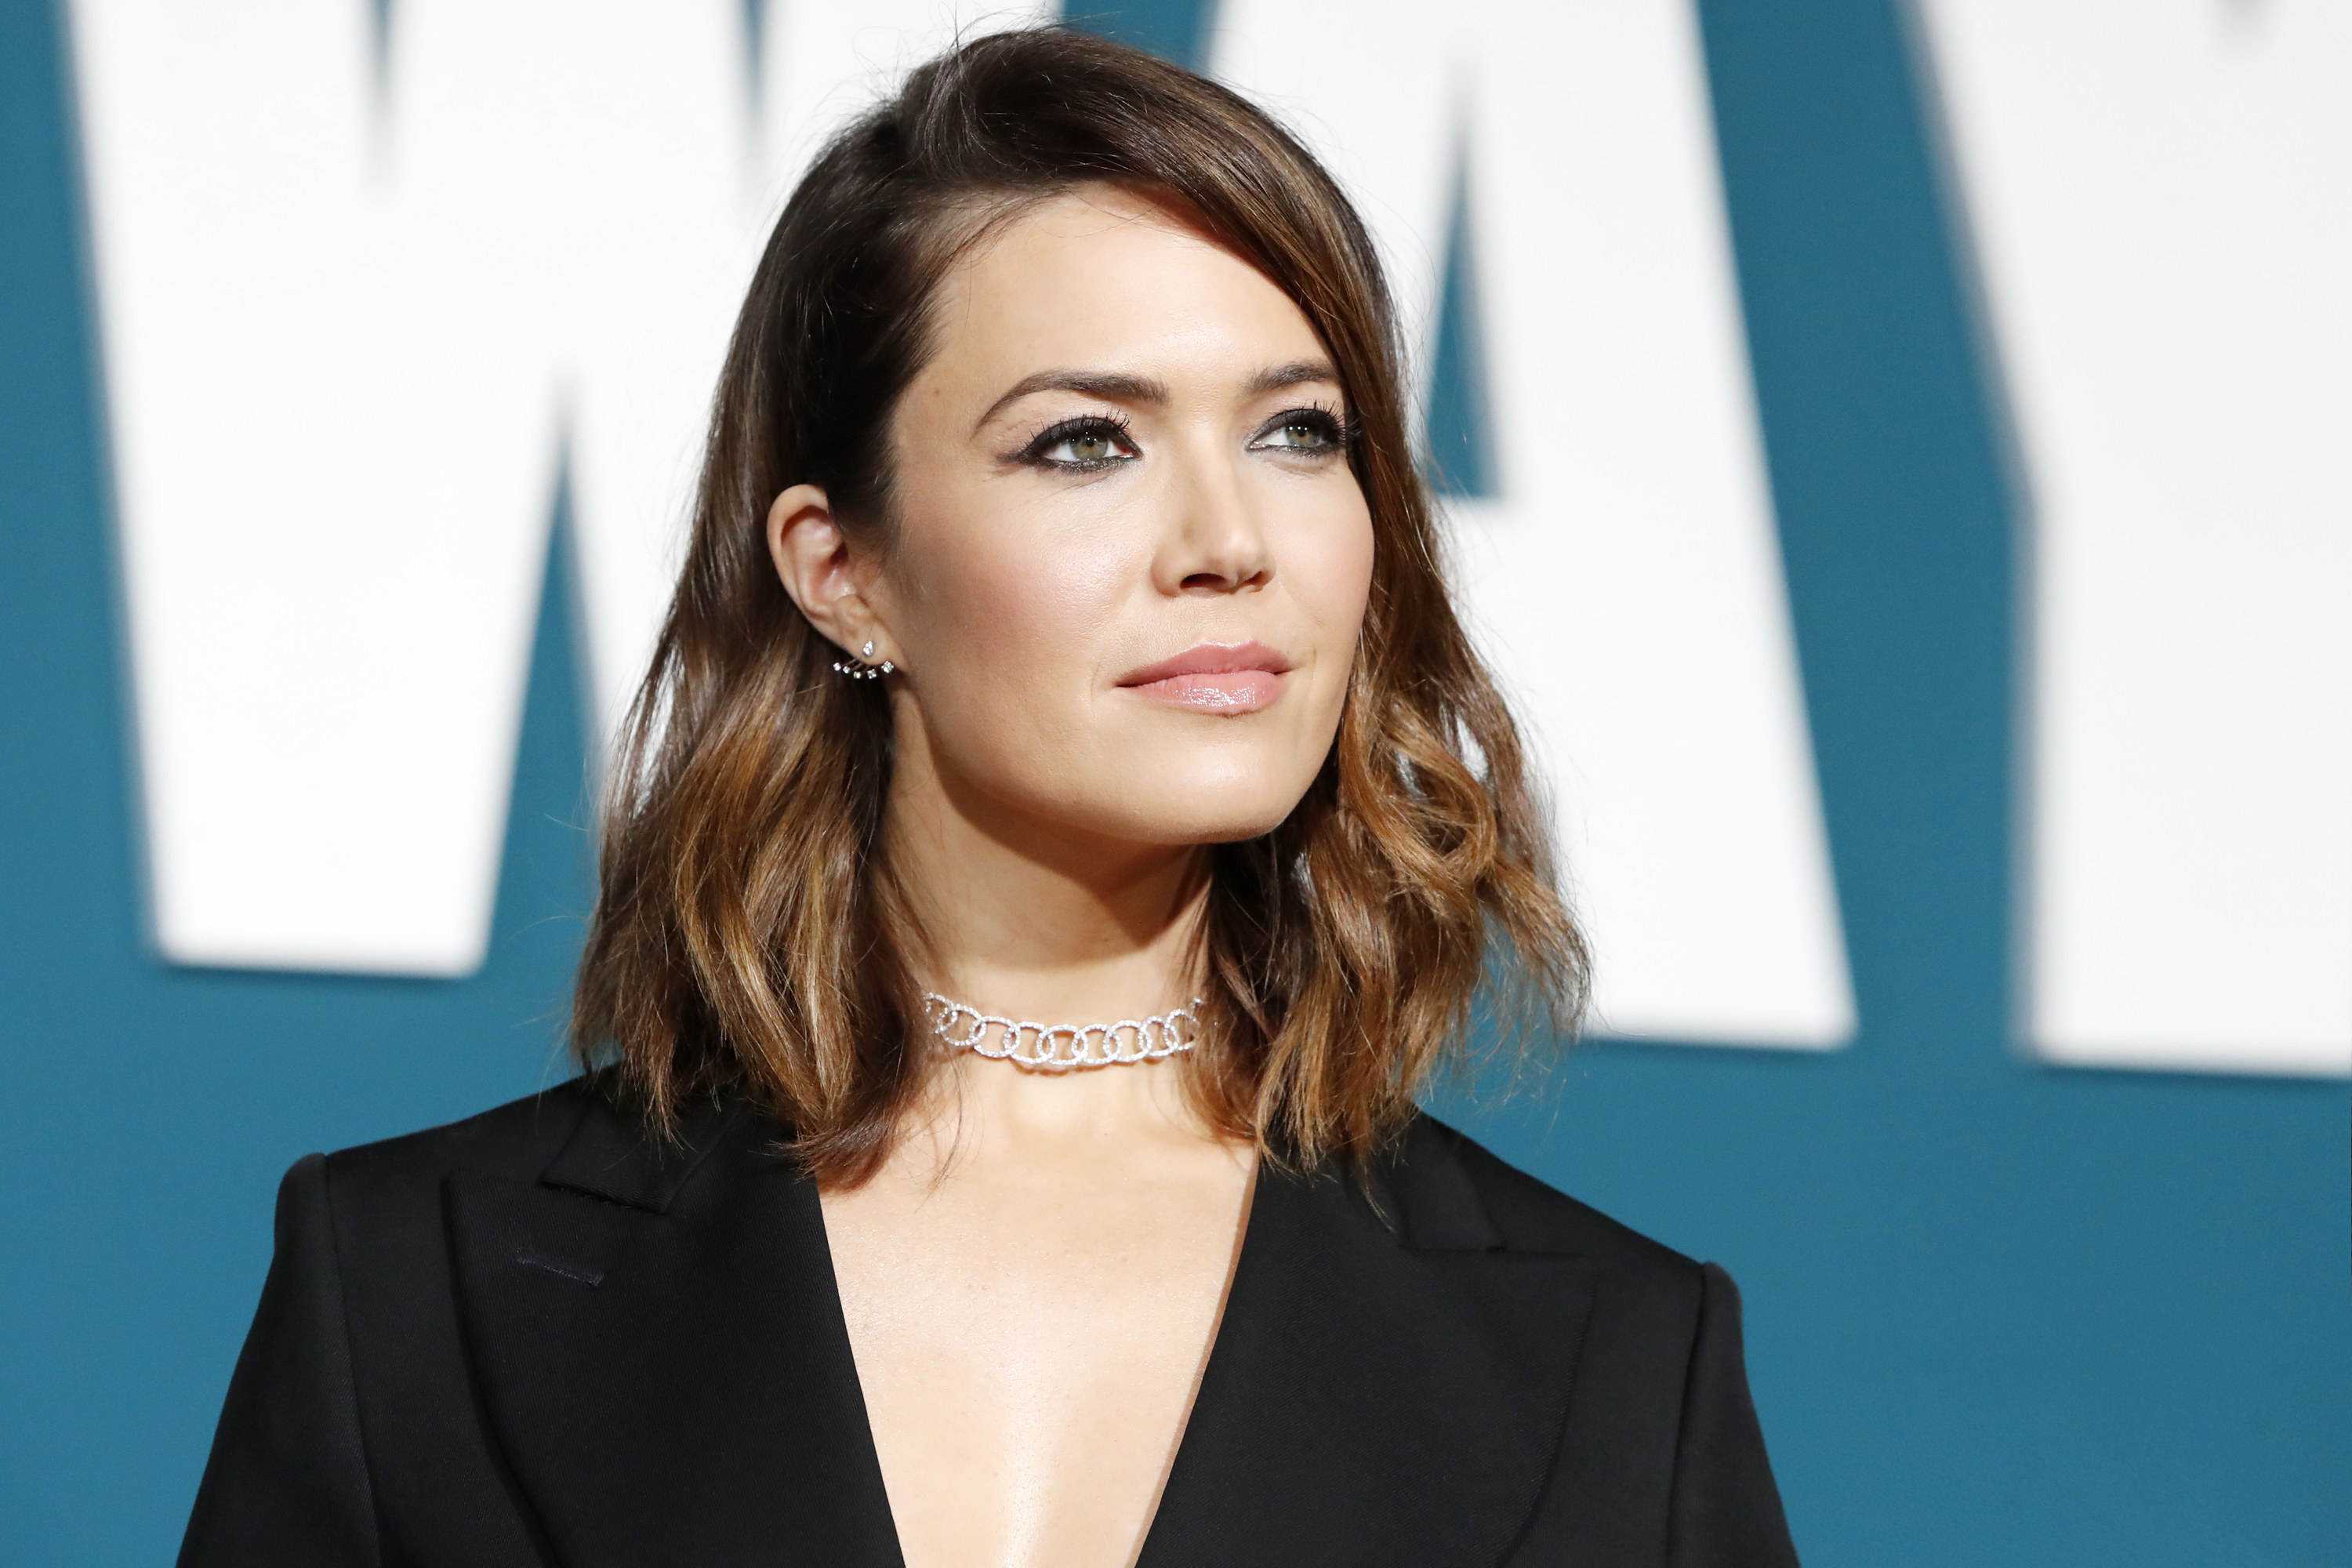 Mandy Moore attends a movie premiere in 2019